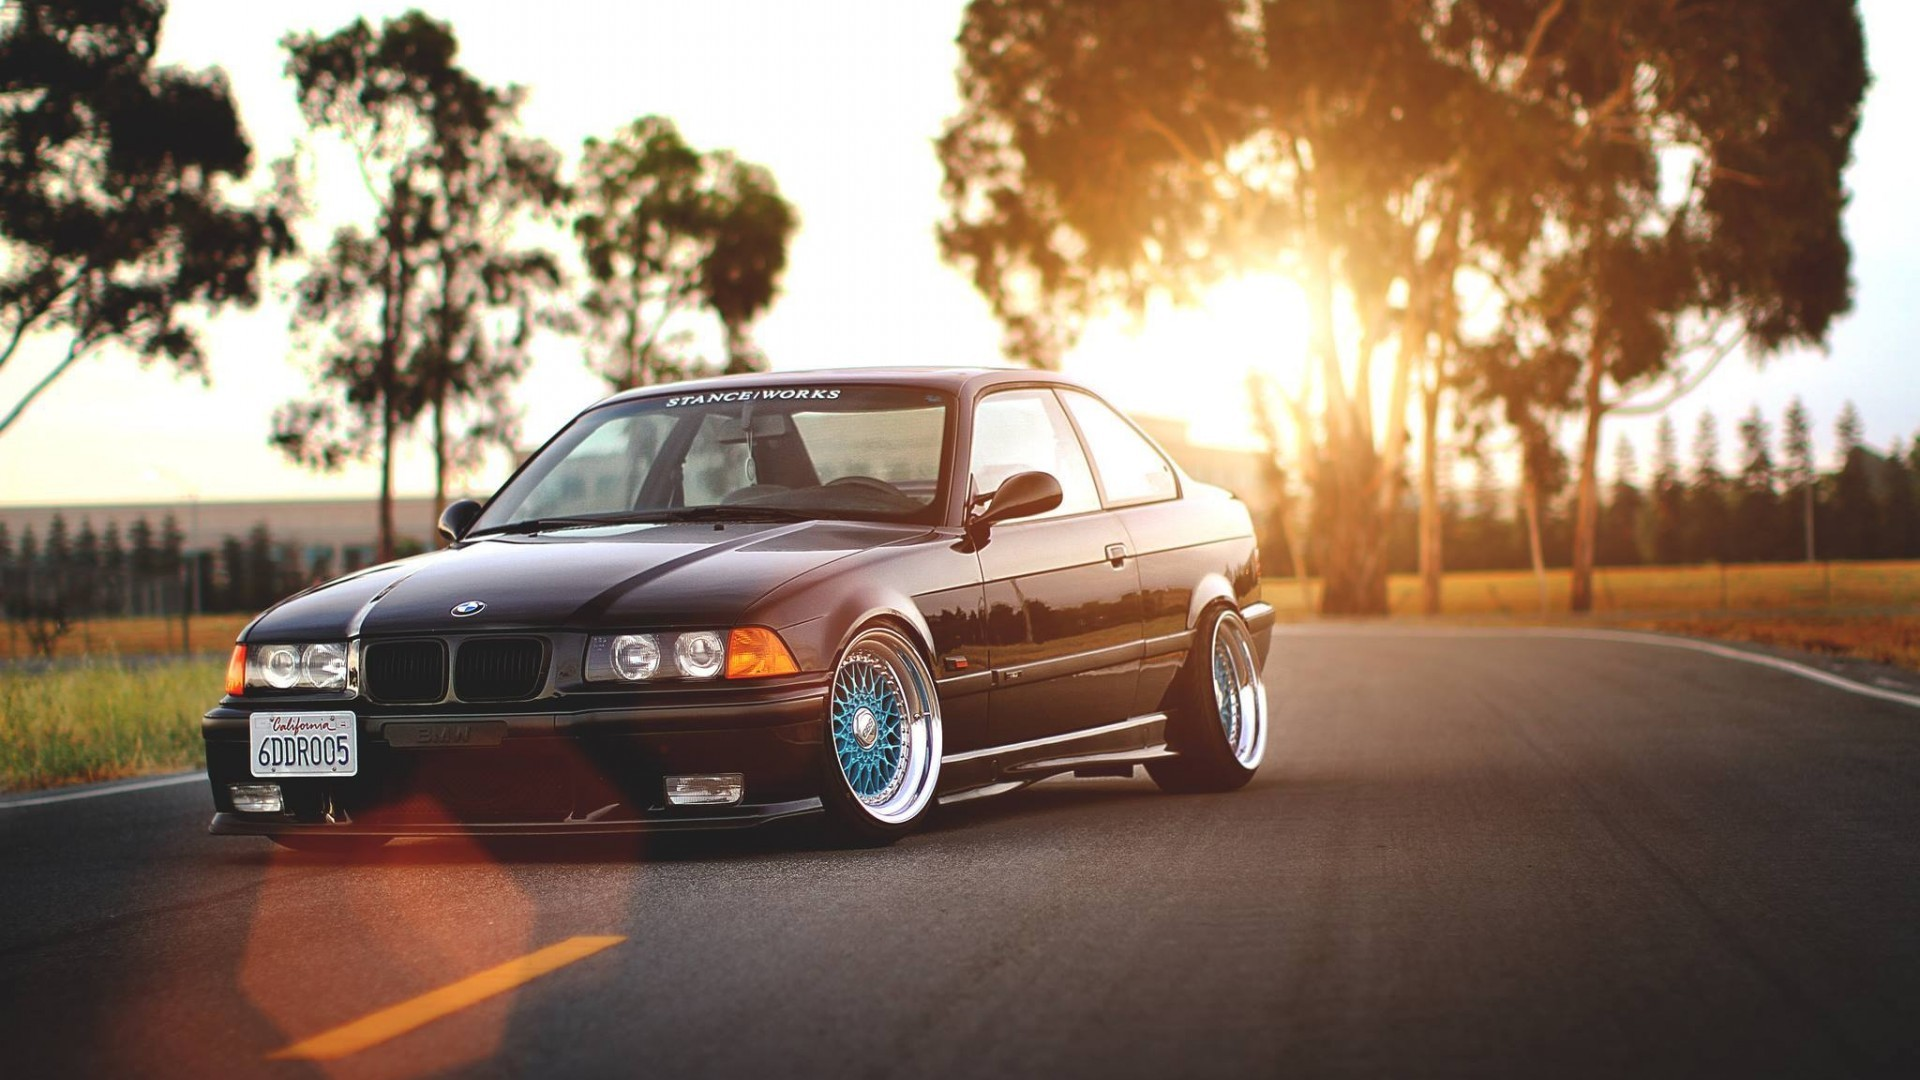 66 Bmw E36 Wallpapers on WallpaperPlay 1920x1080